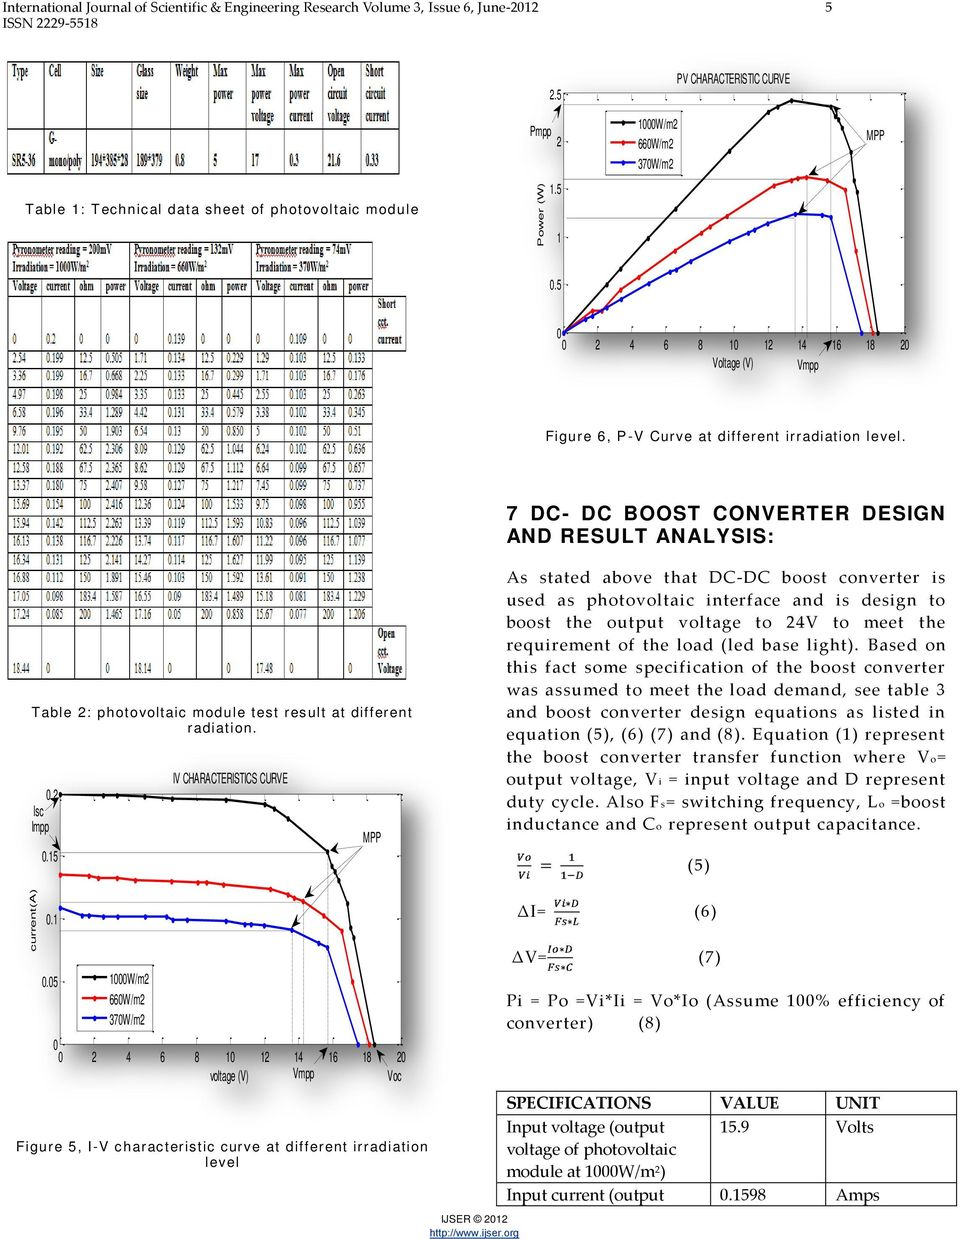 Design Of Dc Converter With Maximum Power Point Tracker Using Quasi Resonant Zvs Boost Free Final Year 7 And Result Analysis Table 2 Photovoltaic Module